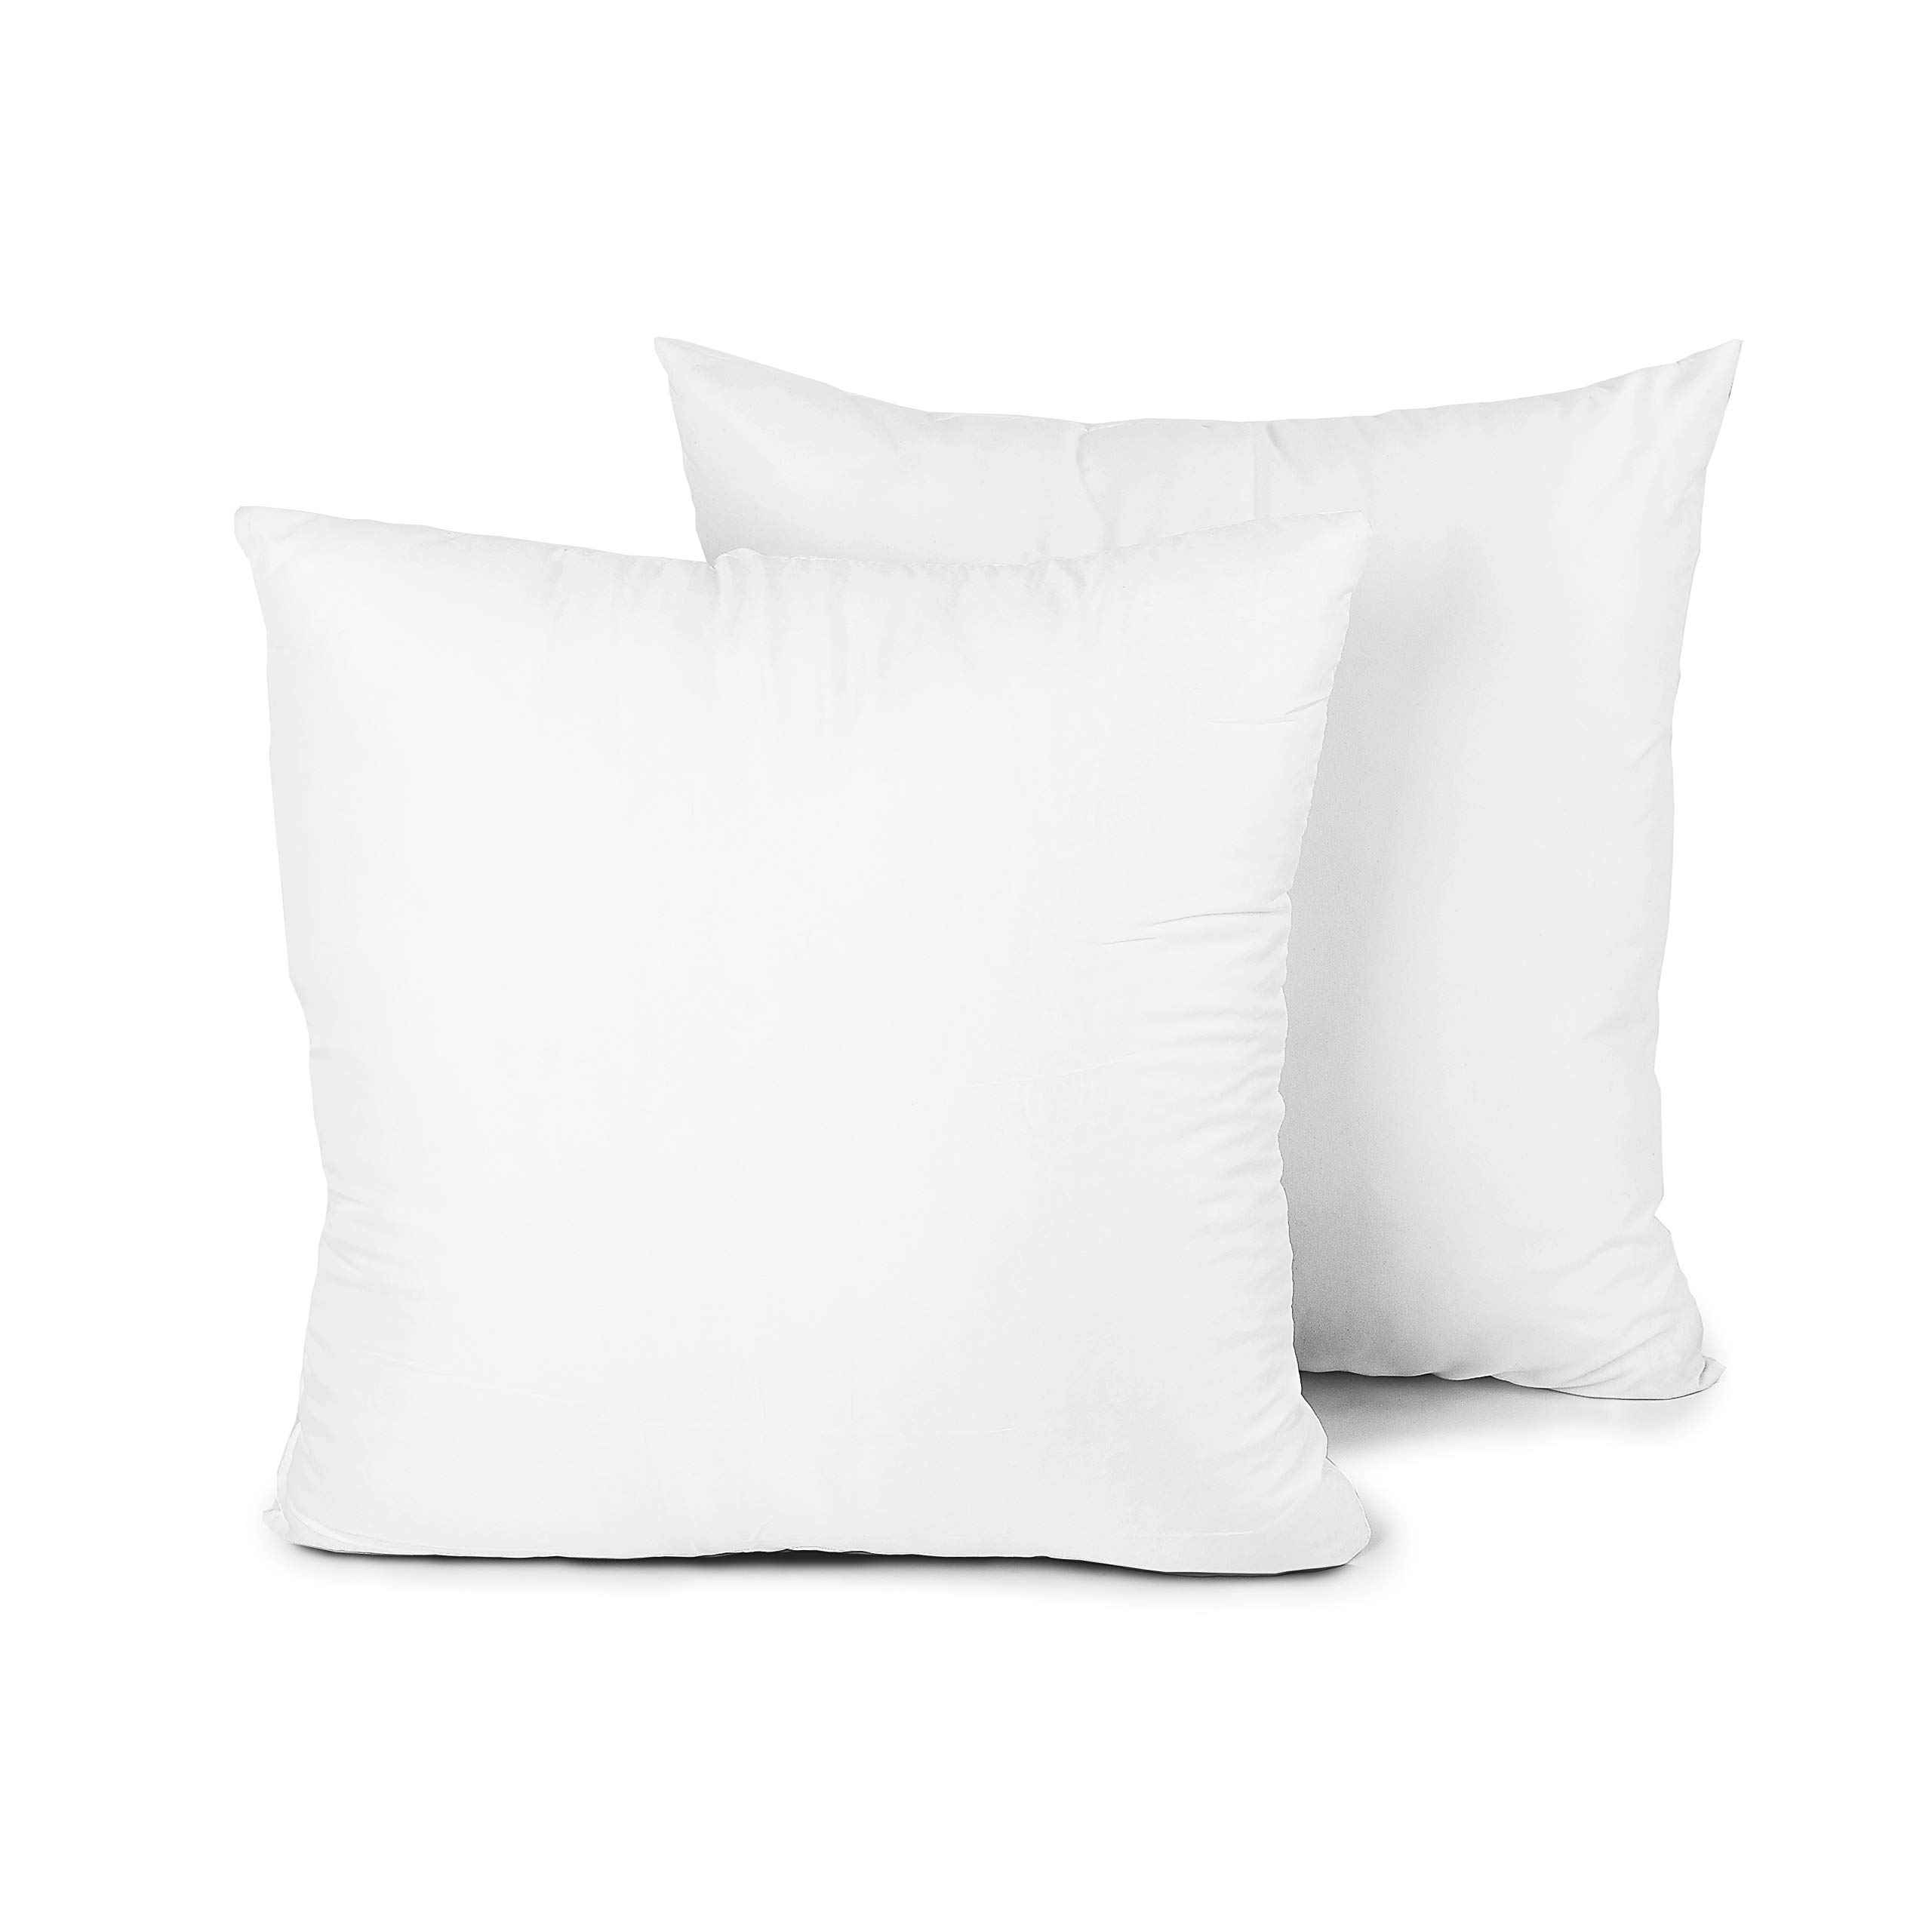 Throw Pillow Insert,Edow set of 2 Hypoallergenic Down Alternative Polyester Square Form Decorative Pillow, Cushion,Sham Stuffer,18 x 18 inches. by edow